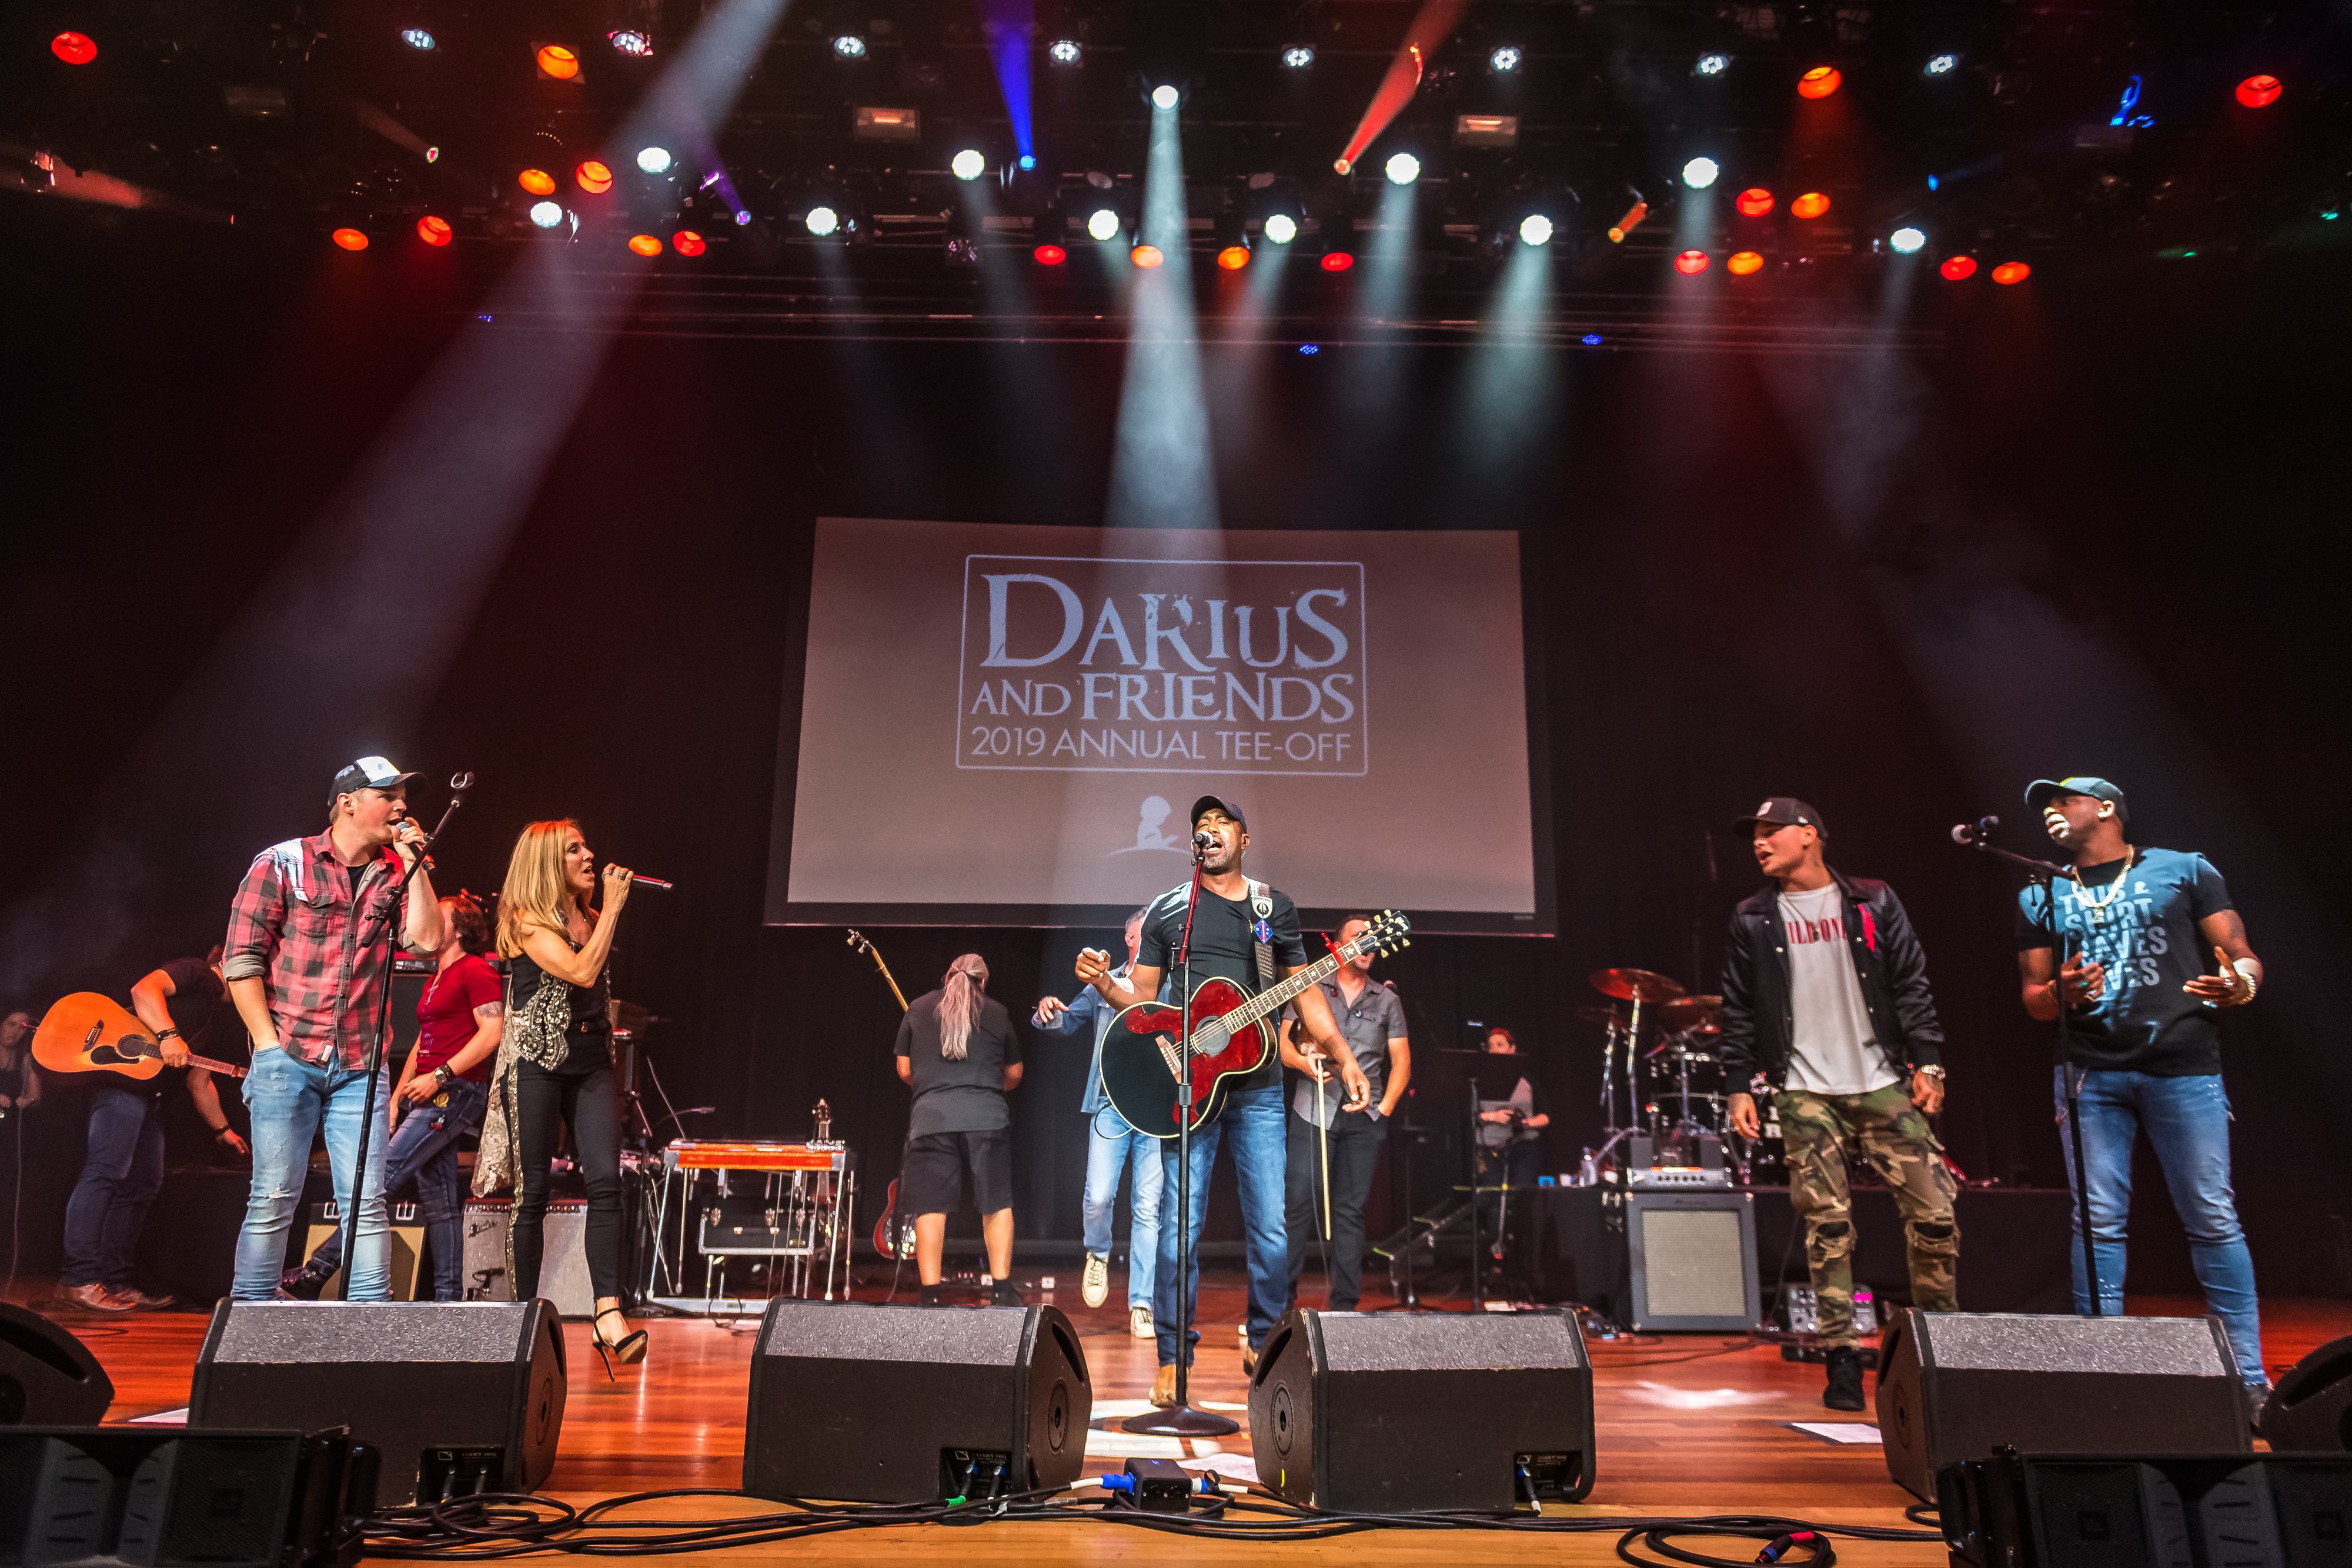 DARIUS SURPASSES $2 MILLION RASIED FOR ST. JUDE WITH 10TH ANNUAL